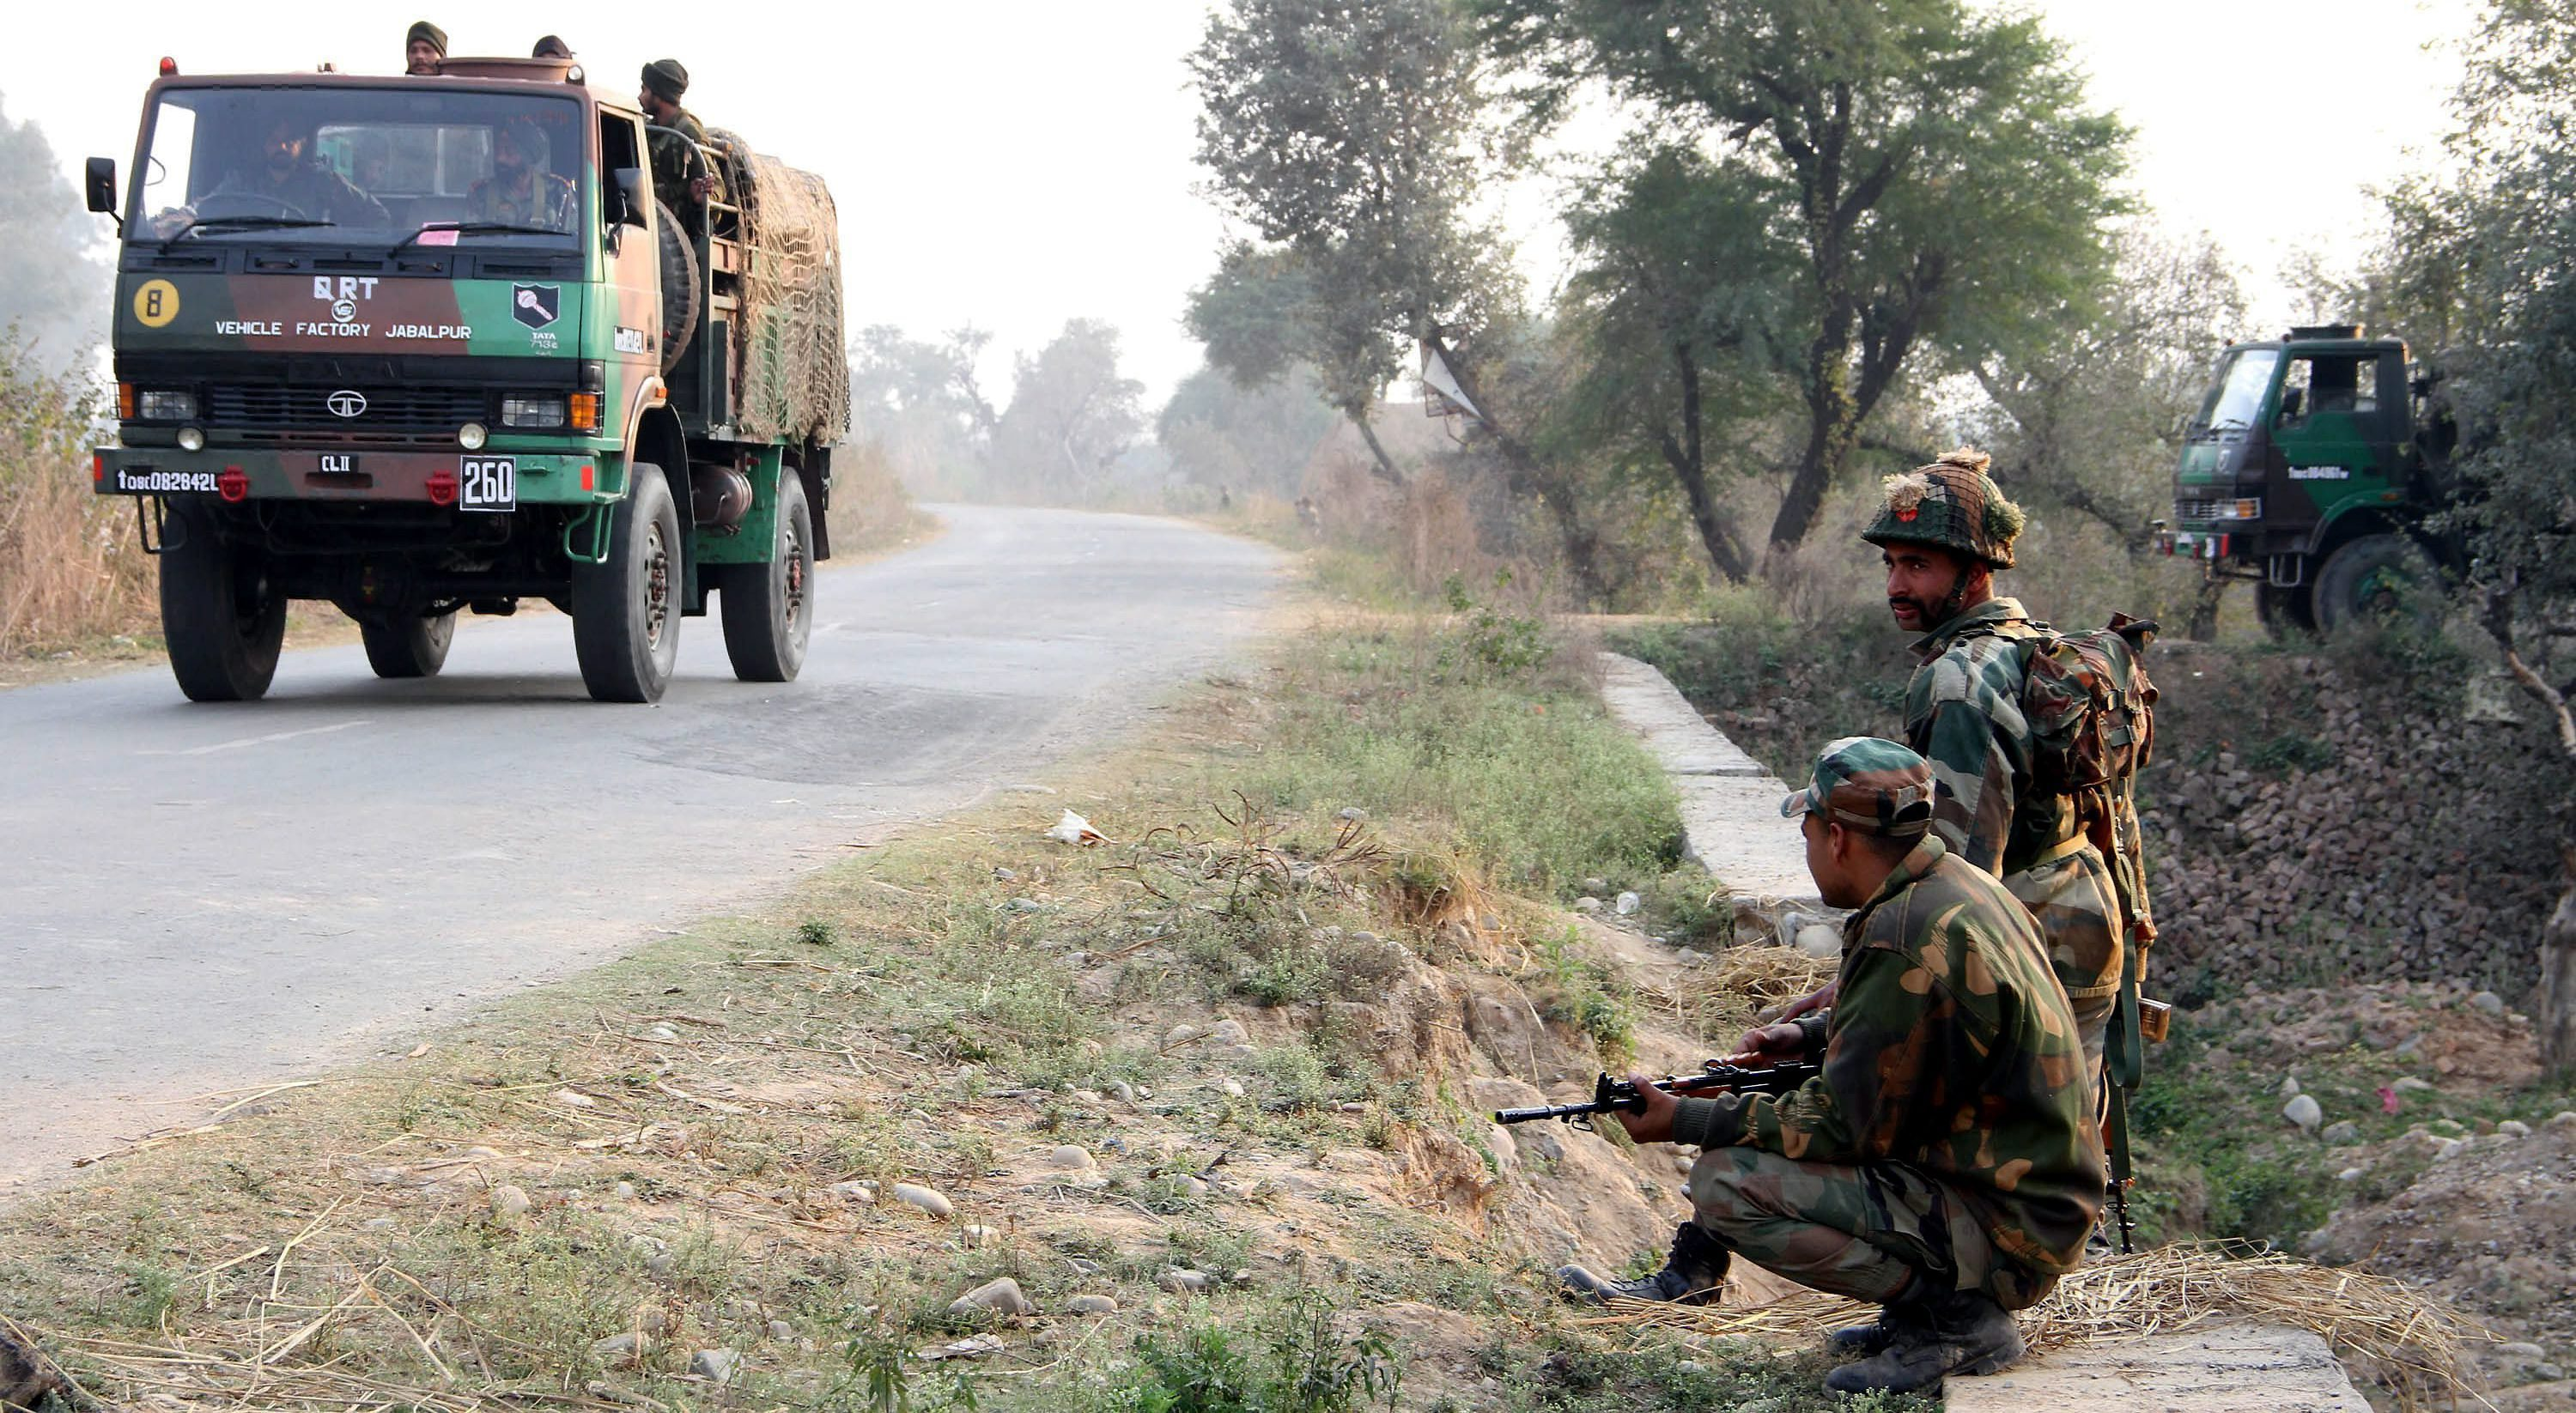 Questions We Must Ask About the Pathankot Attack